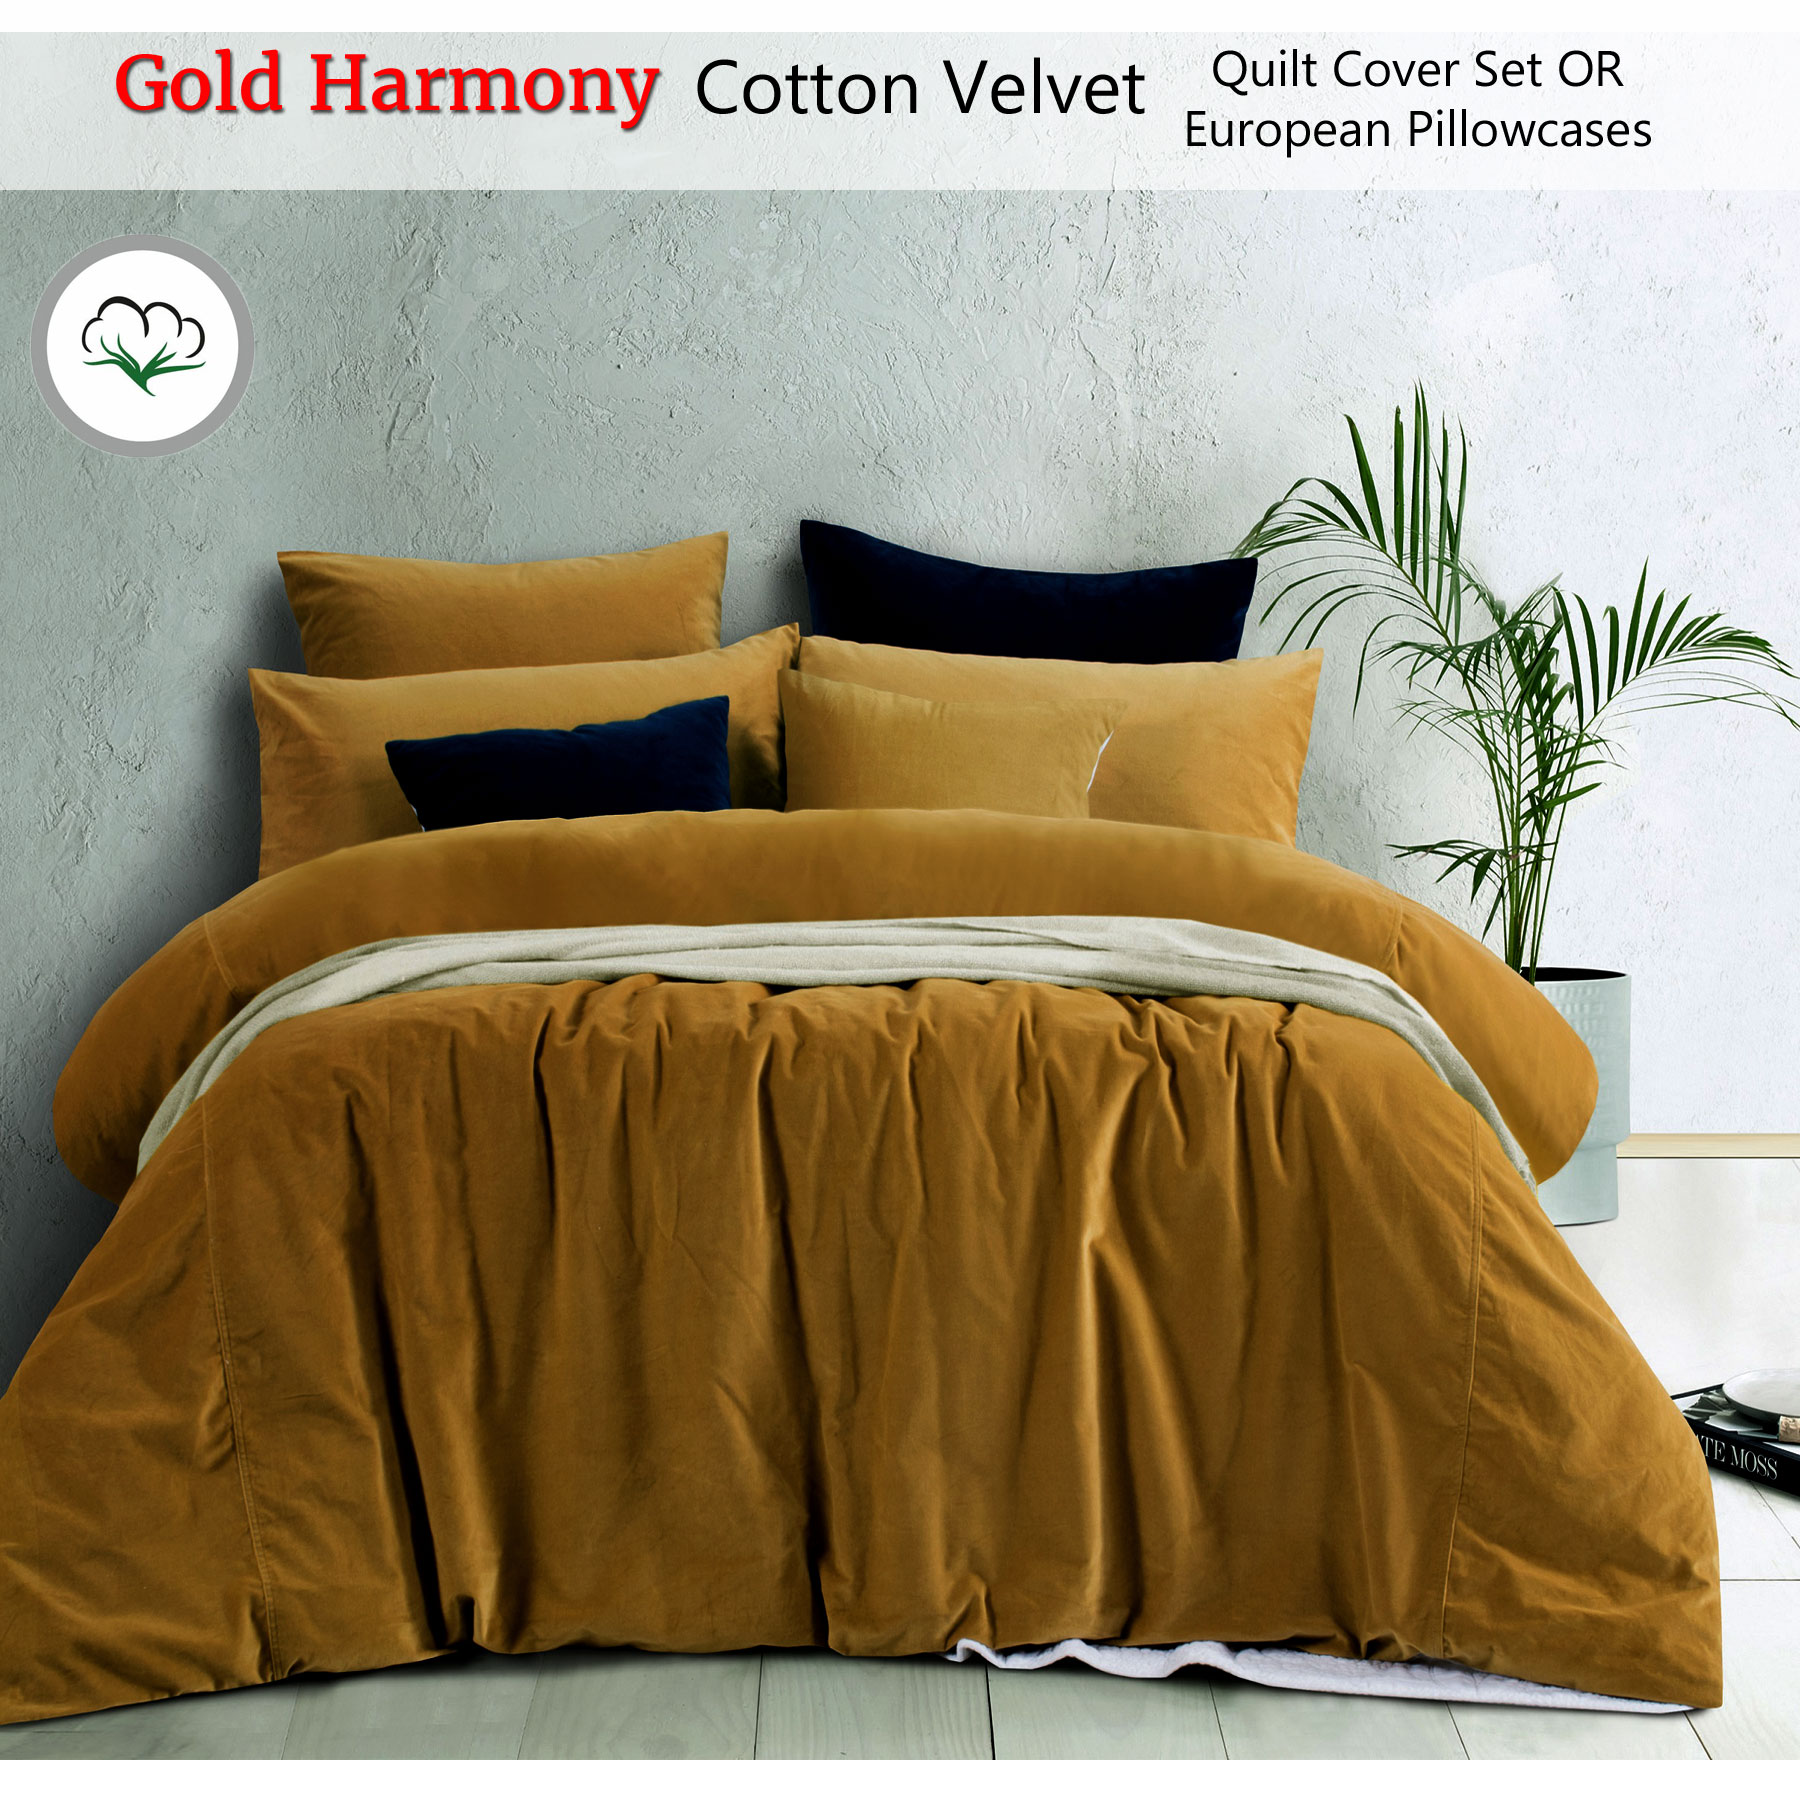 the manufacturer sku quilt duvet designs numbers gold listed harmony following under is cotton also cover reviews velvet sometimes vintage set